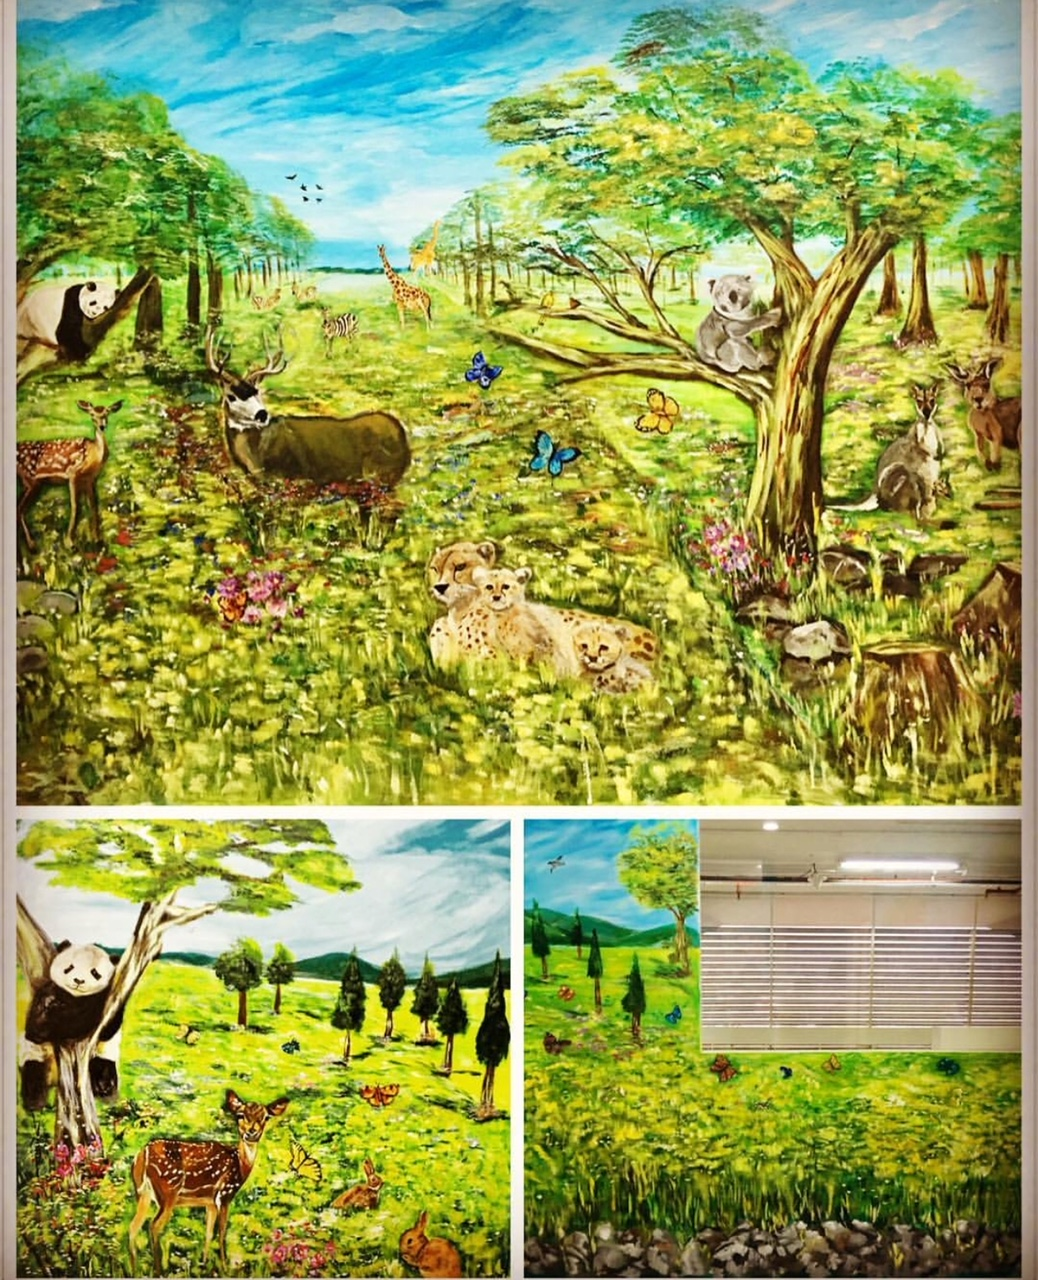 Yang Language School, The GrandStand, Bukit Timah. This was done in May 2016 and is a commissioned work for a school that specialises in the Chinese Language. It took me two weekends or 4 full days to finish this. It was the first time painting animals and for a school for me. From bottom left: first wall on the left as you walk into the room. Top - main longer wall facing you as you walk in, and bottom right: the middle wall where the bookshelf will cover the rocks in the middle under the window.